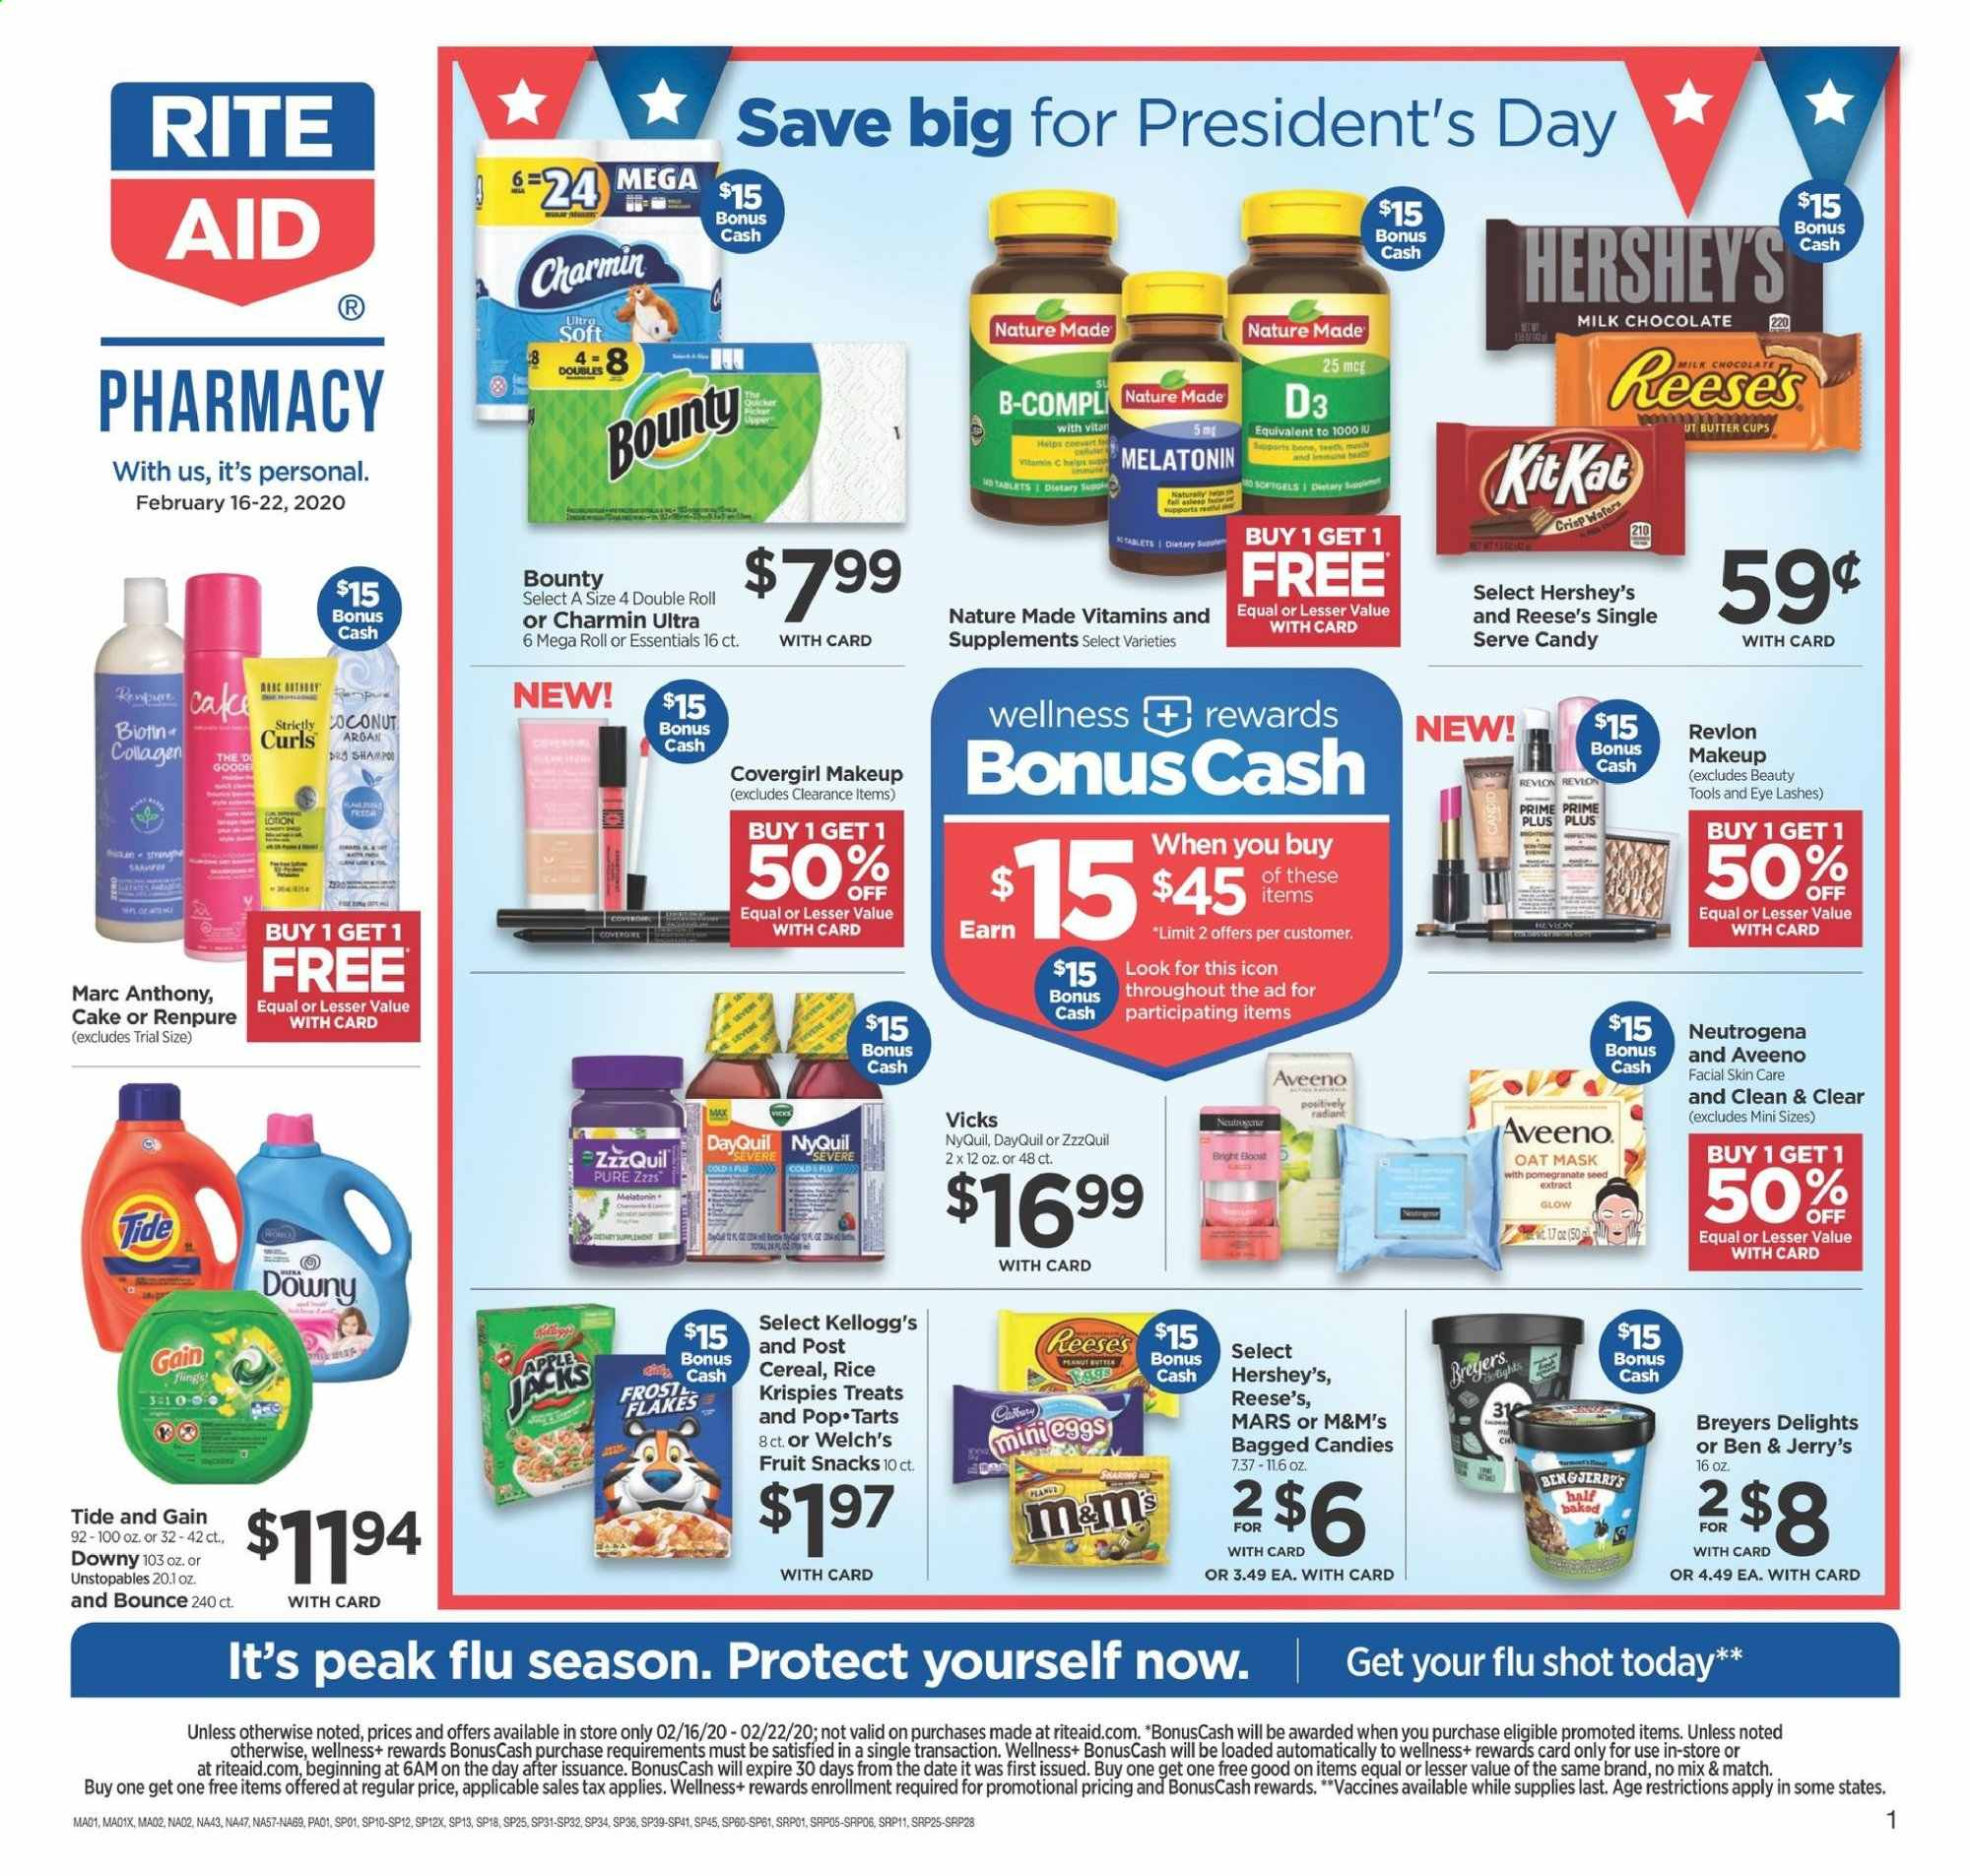 RITE AID Flyer - 02.16.2020 - 02.22.2020 - Sales products - milk chocolate, wafers, chocolate, candy, Bounty, Mars, KitKat, M&M's, snack, oats, cereals, peanuts, Aveeno, Gain, Downy, Tide, Unstopables, shampoo, Neutrogena, Revlon, tools, makeup, mask, Plus Plus, seed, Biotin, DayQuil, Melatonin, Nature Made, ZzzQuil, NyQuil, essentials. Page 1.